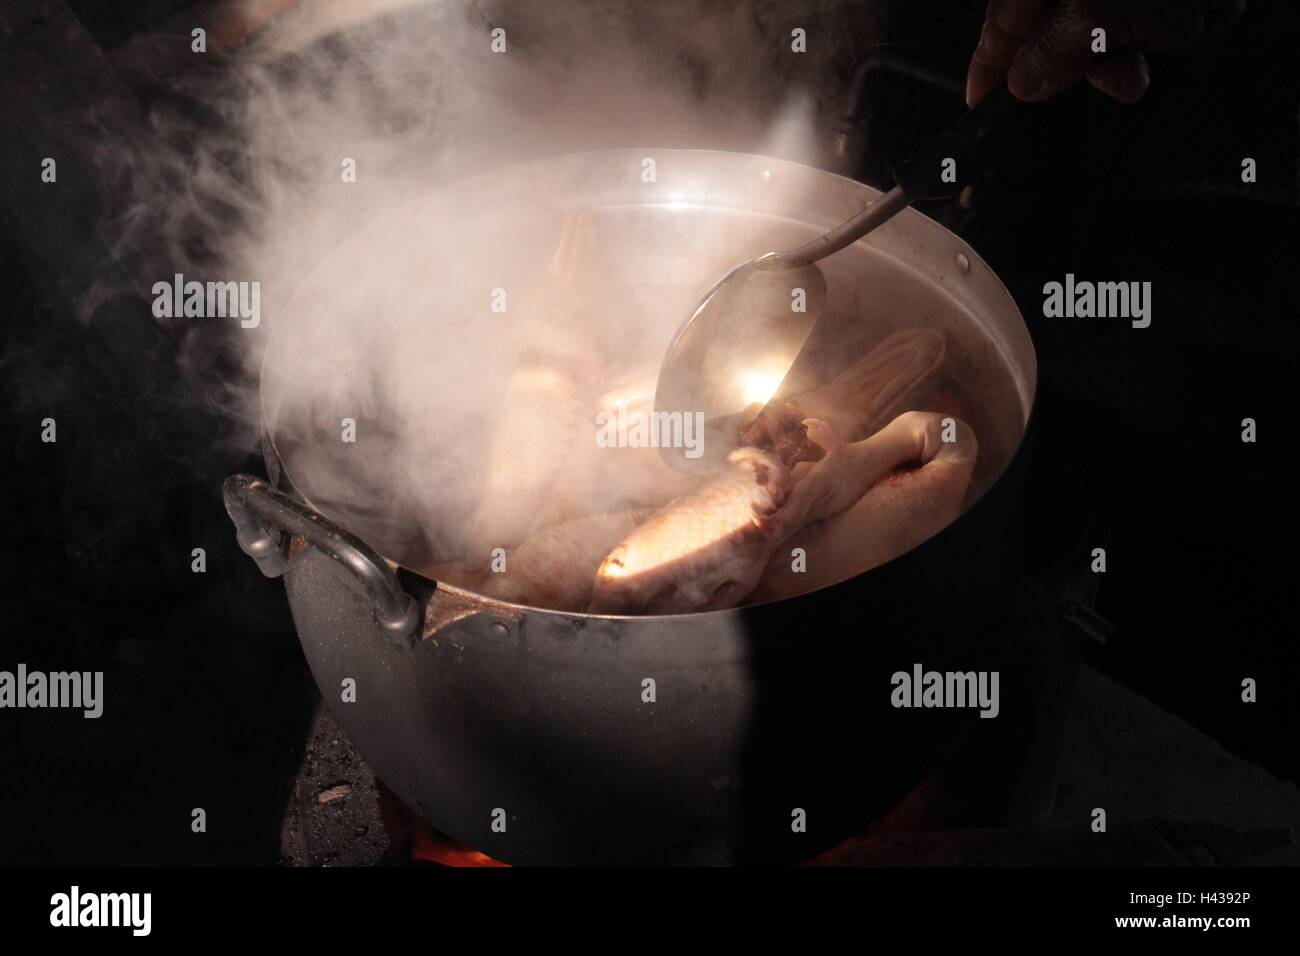 Old pot of food cooking on burning wood fire stove - Stock Image